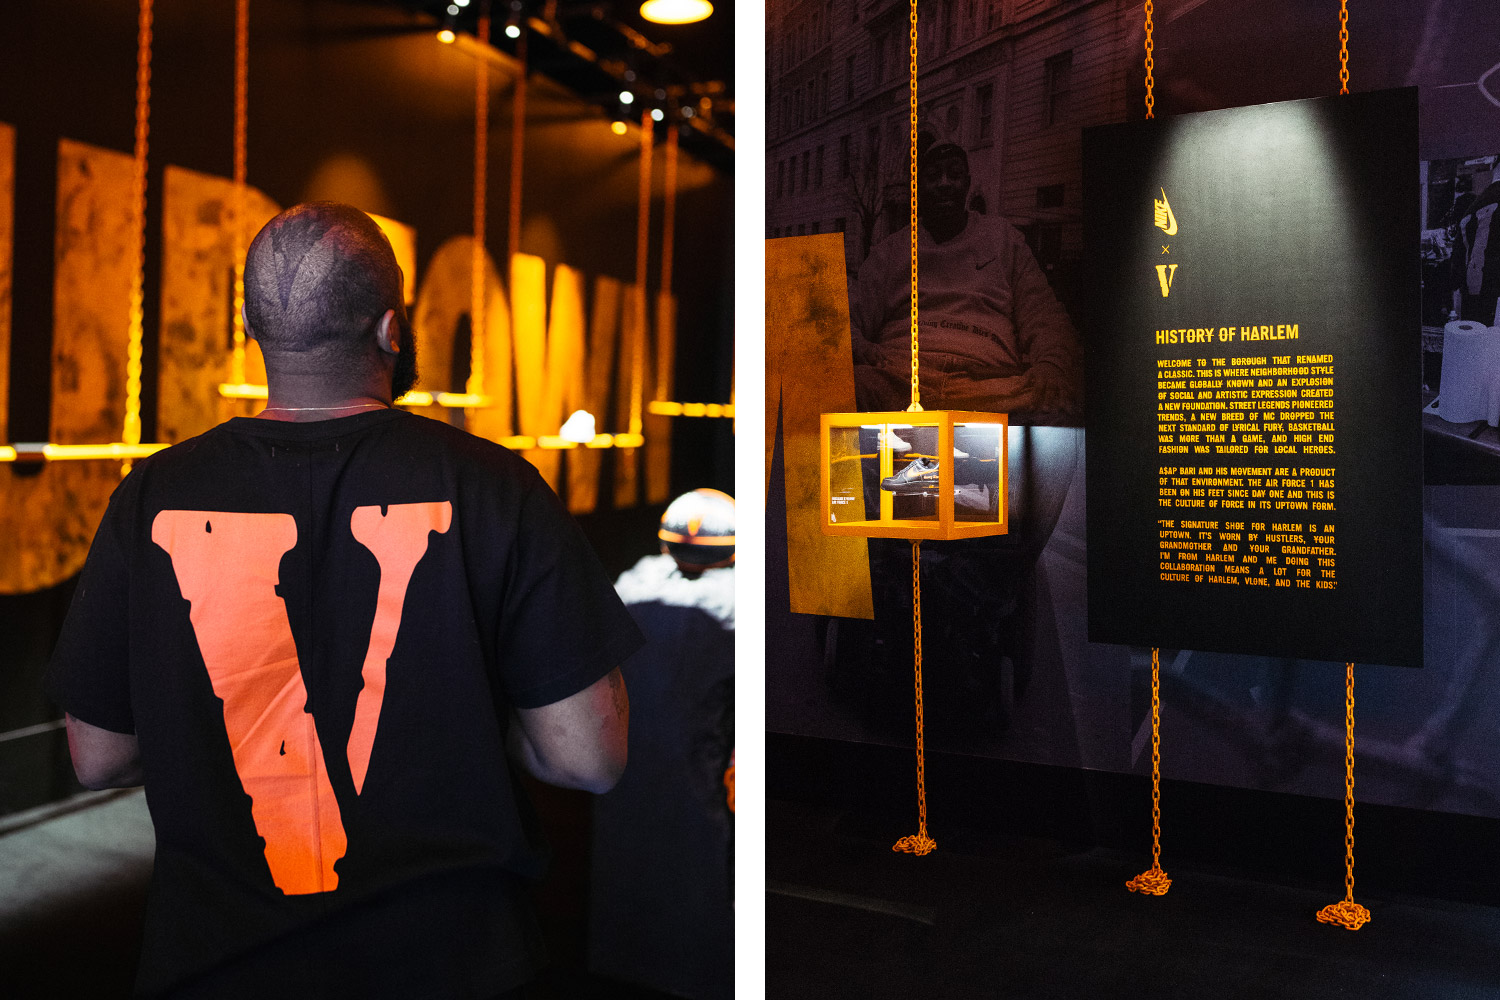 Nike-Air-Force-1-Vlone-Harlem-Pop-Up-Asap-Bari-07